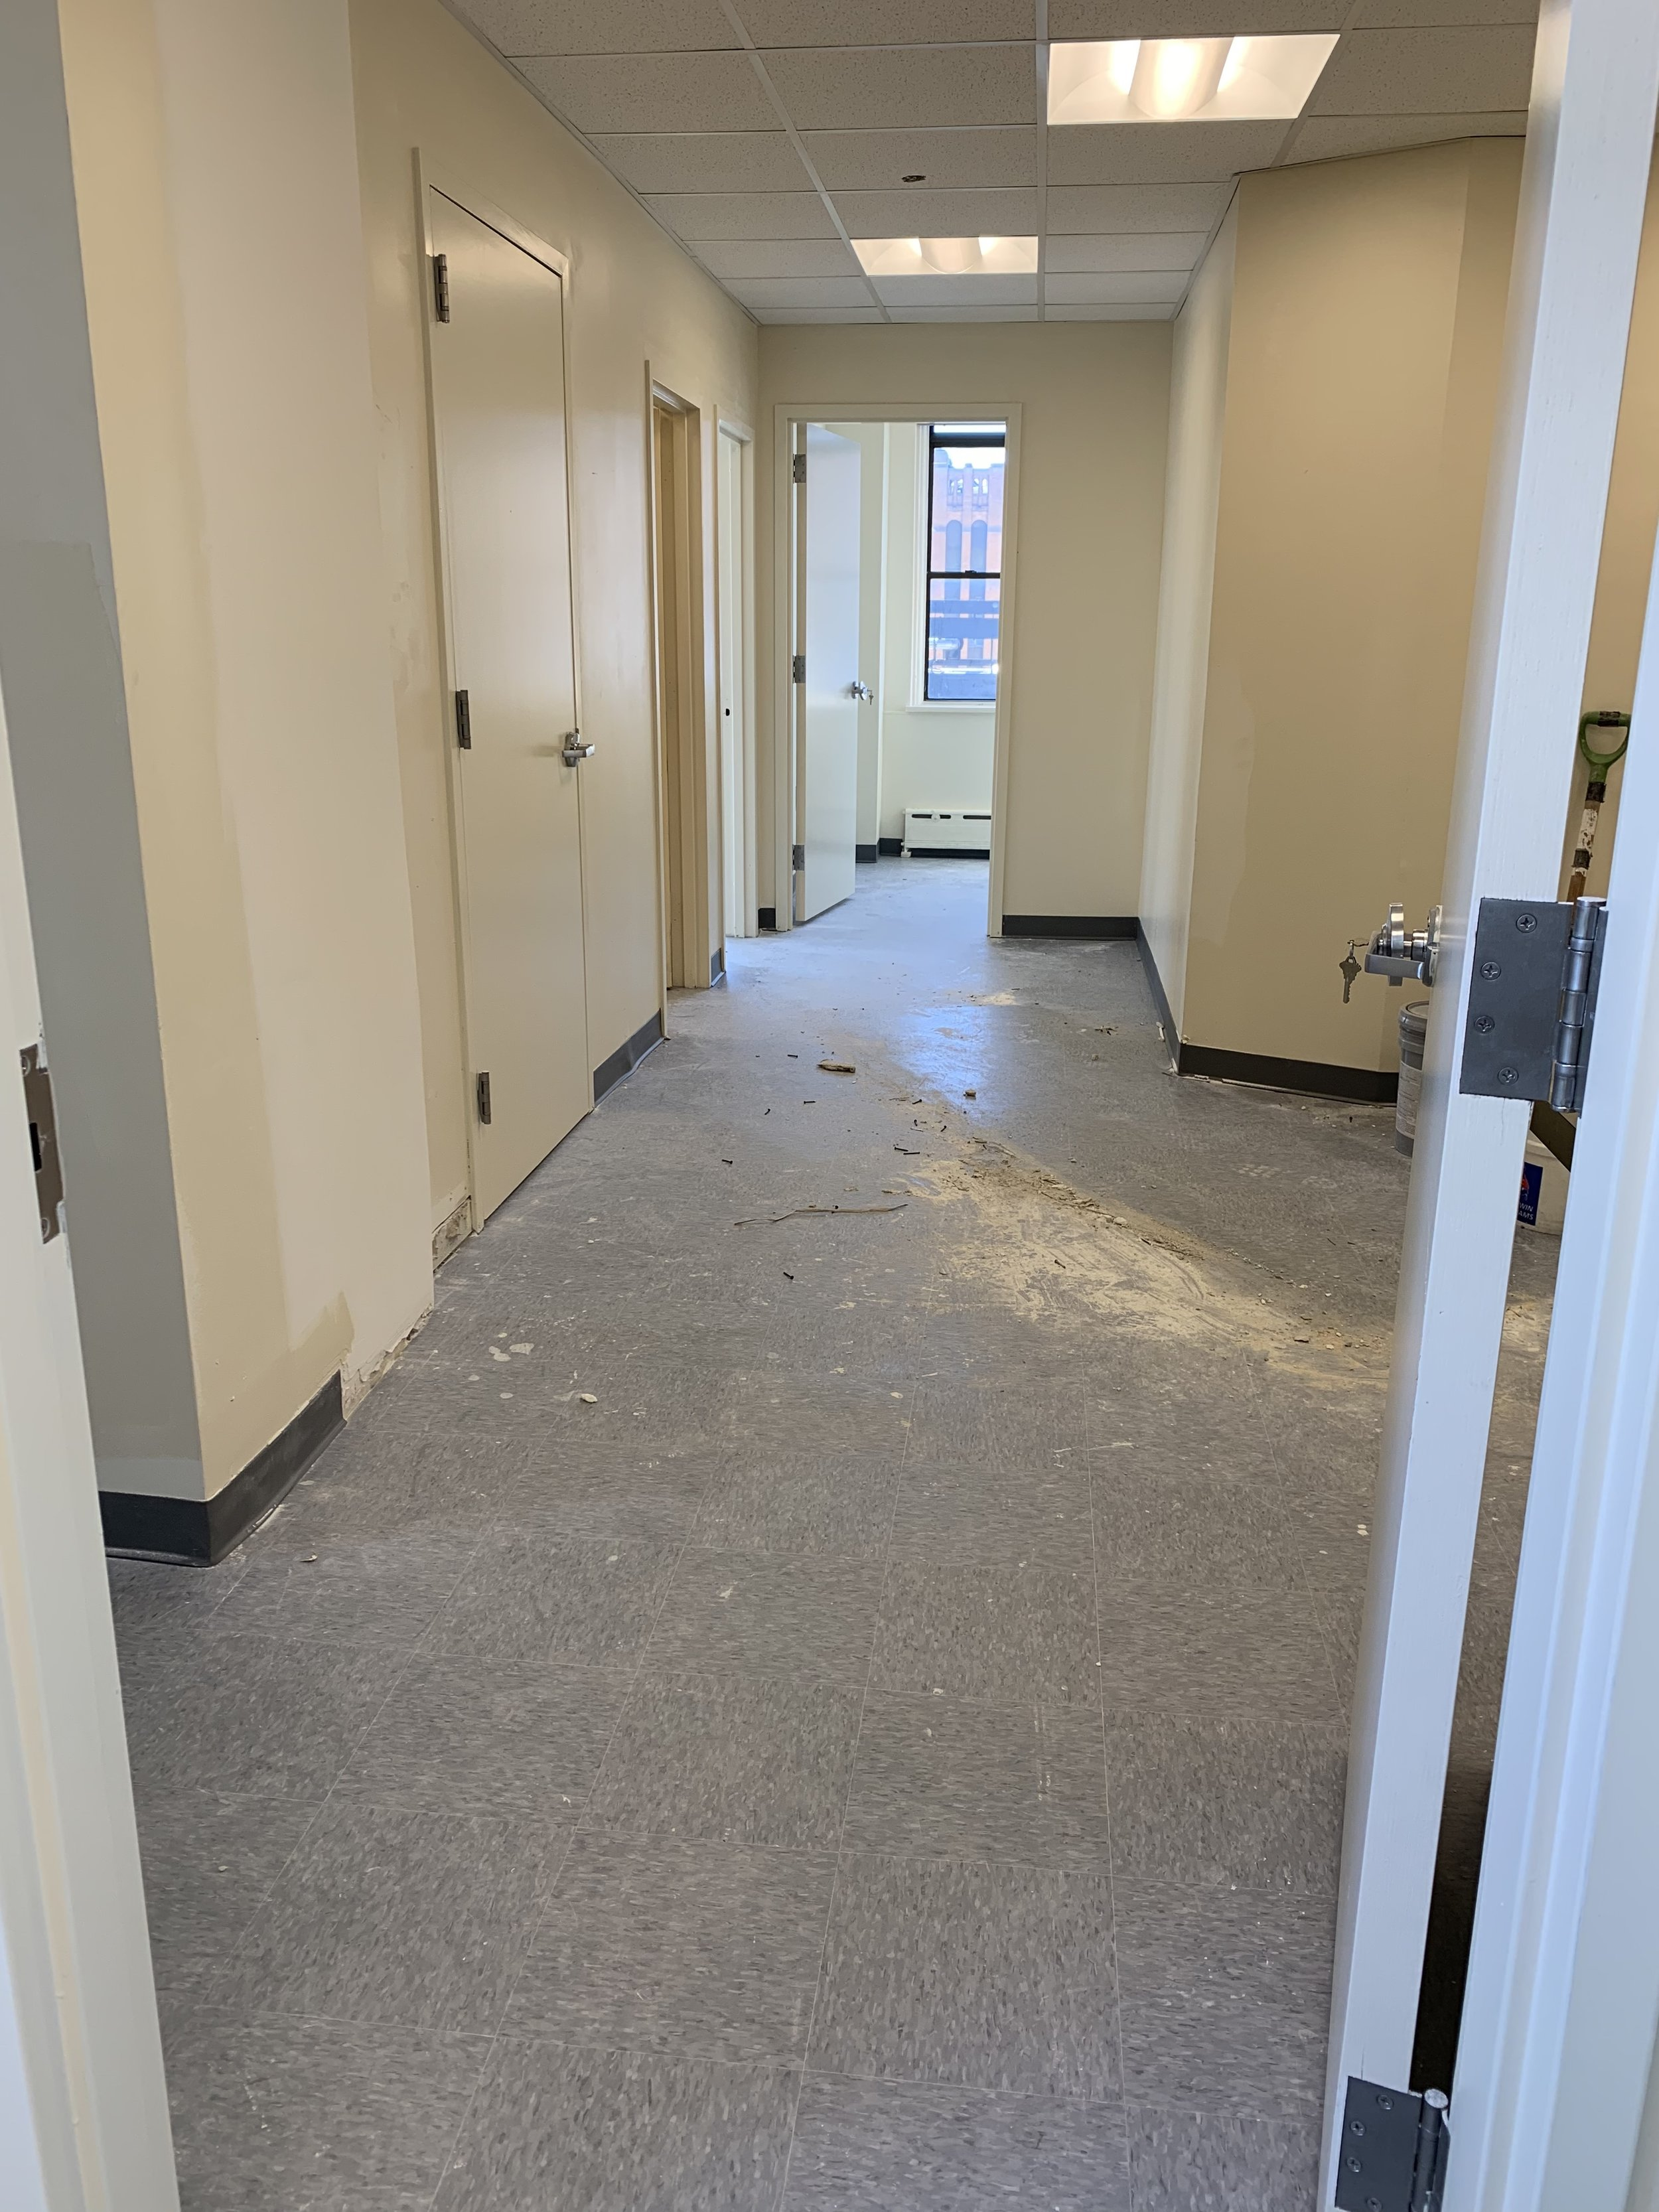 The main hall of our manufacturing suite, complete with offices, kitchen, and multple workspaces.